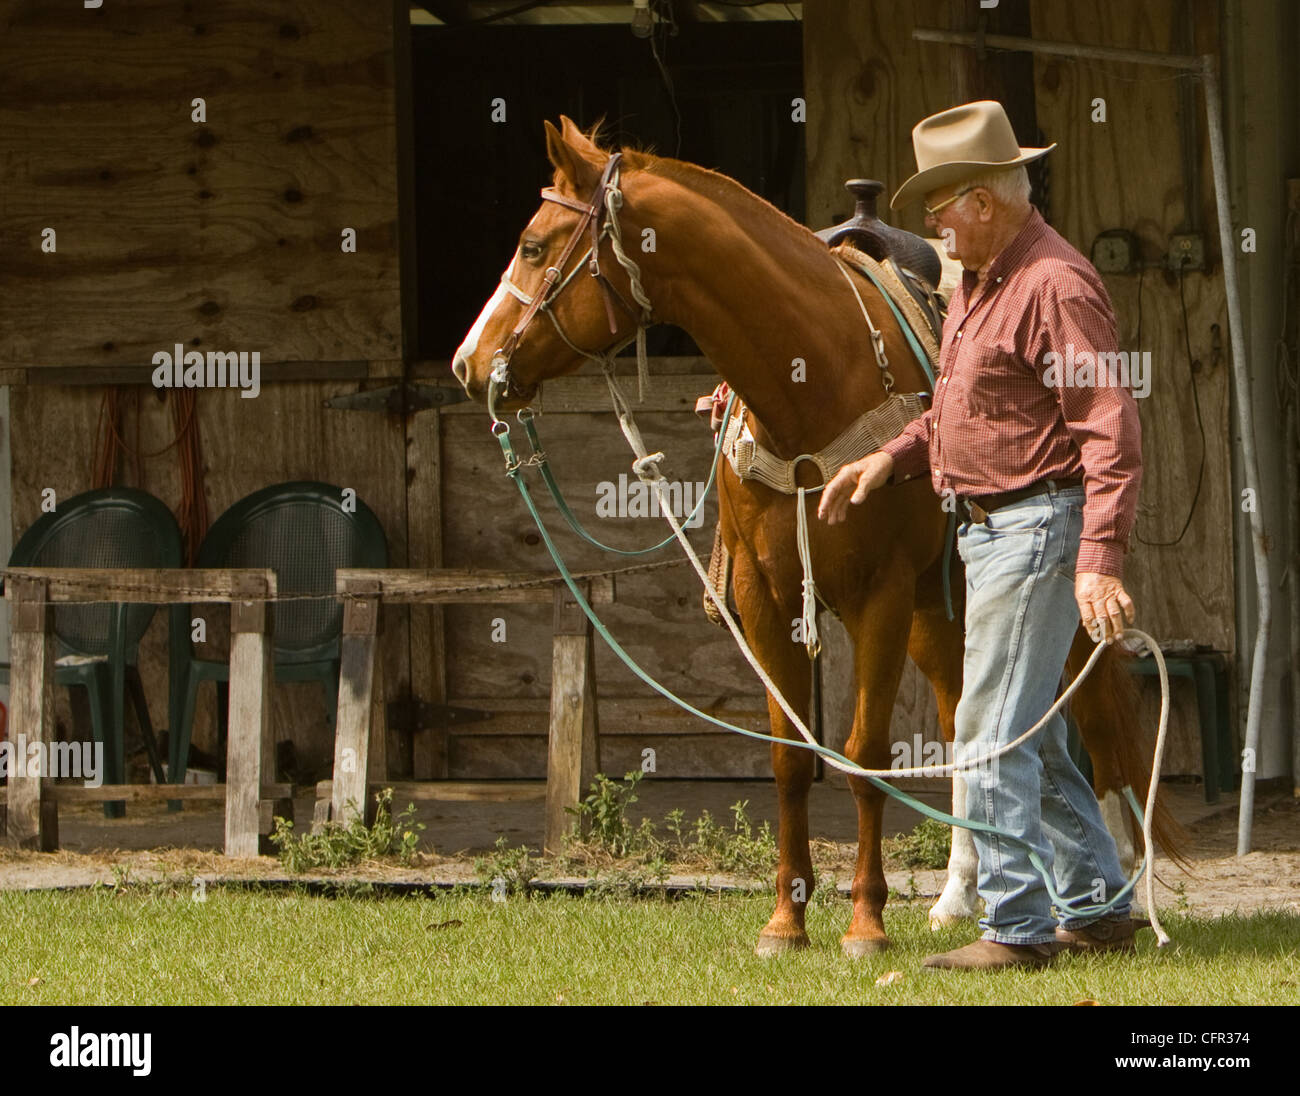 A cowboy preparing to mount his horse. - Stock Image